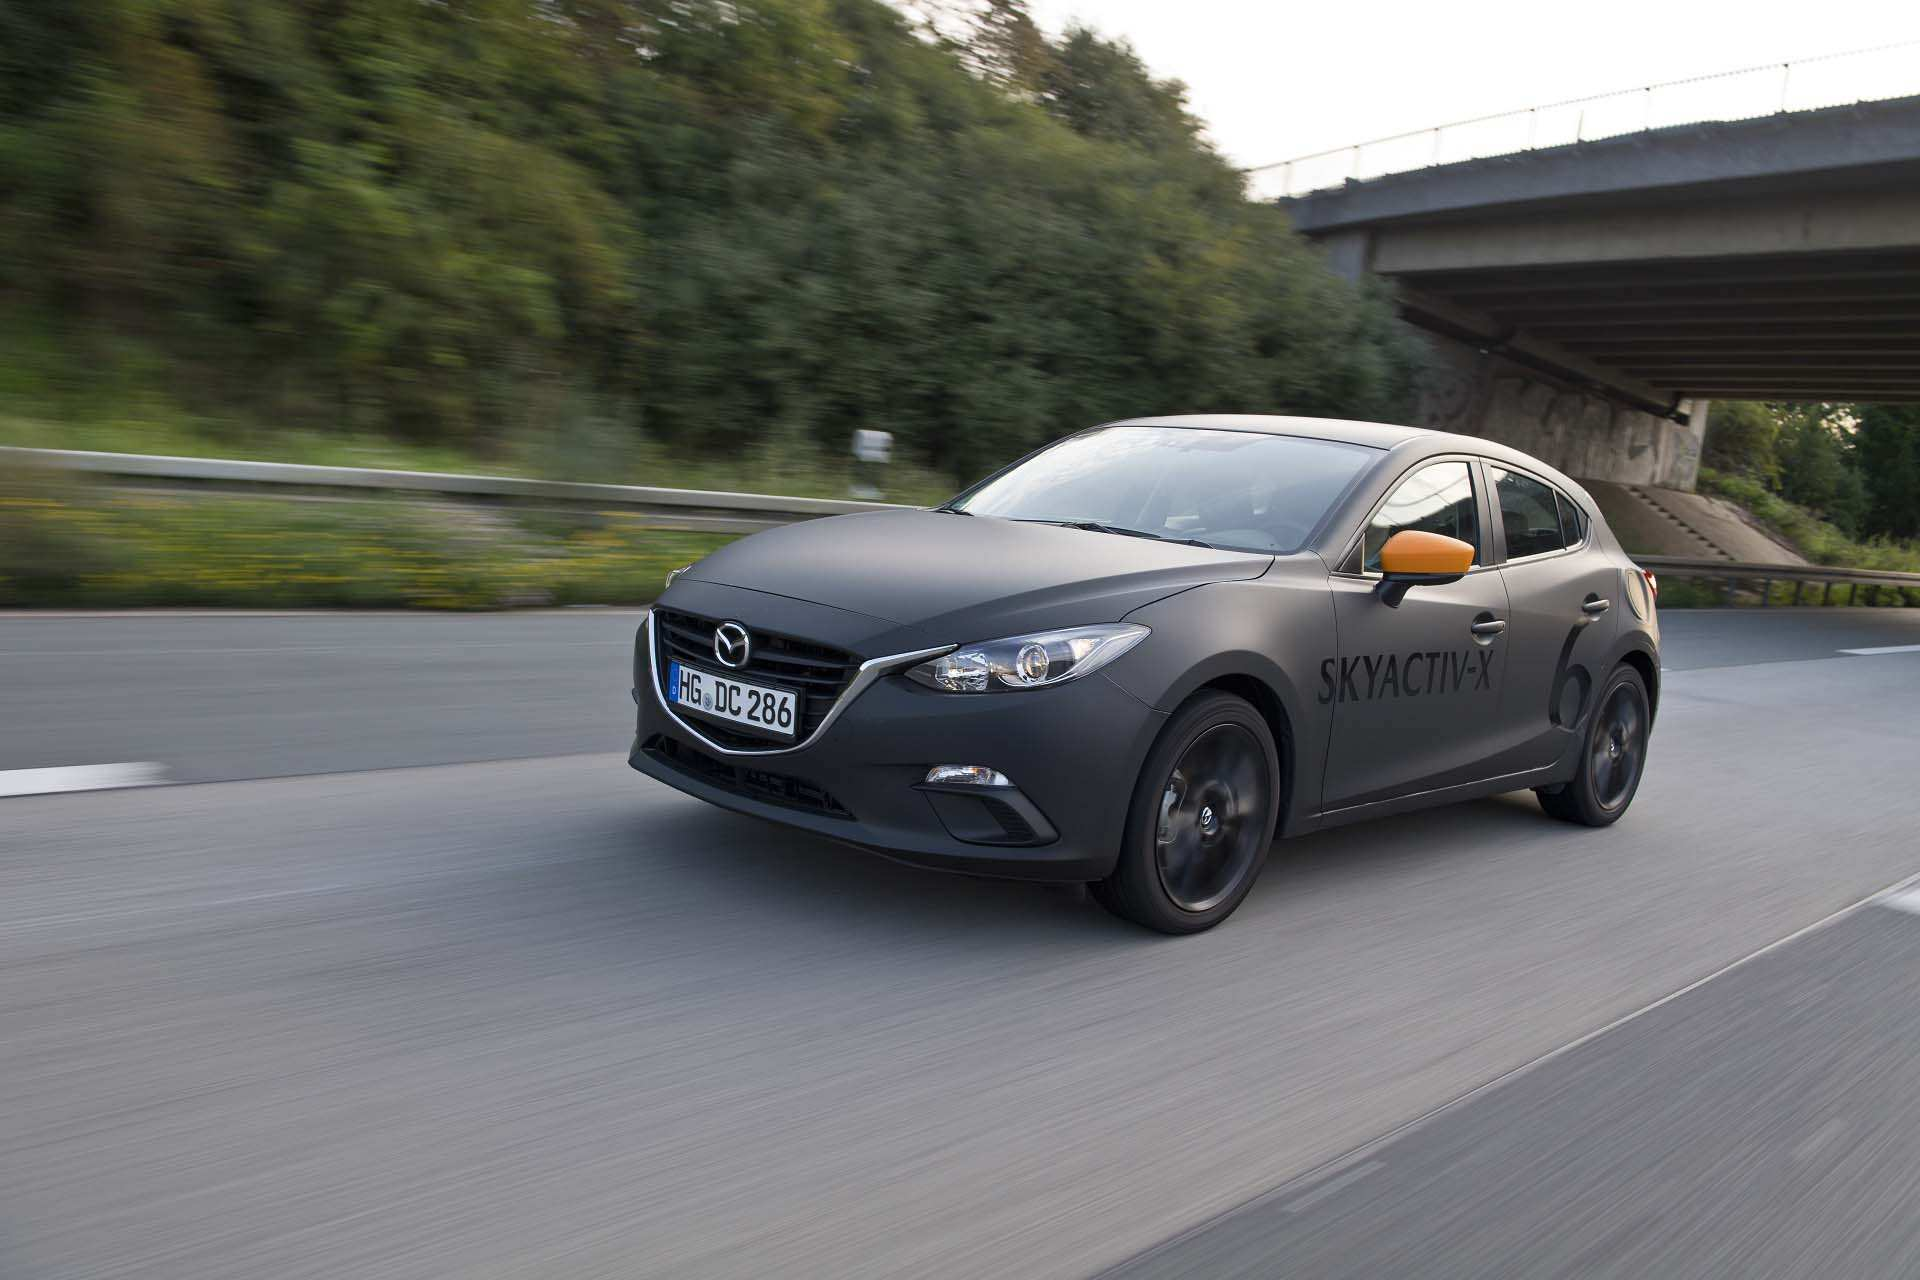 15 Great Mazdaspeed 2020 Price and Review by Mazdaspeed 2020